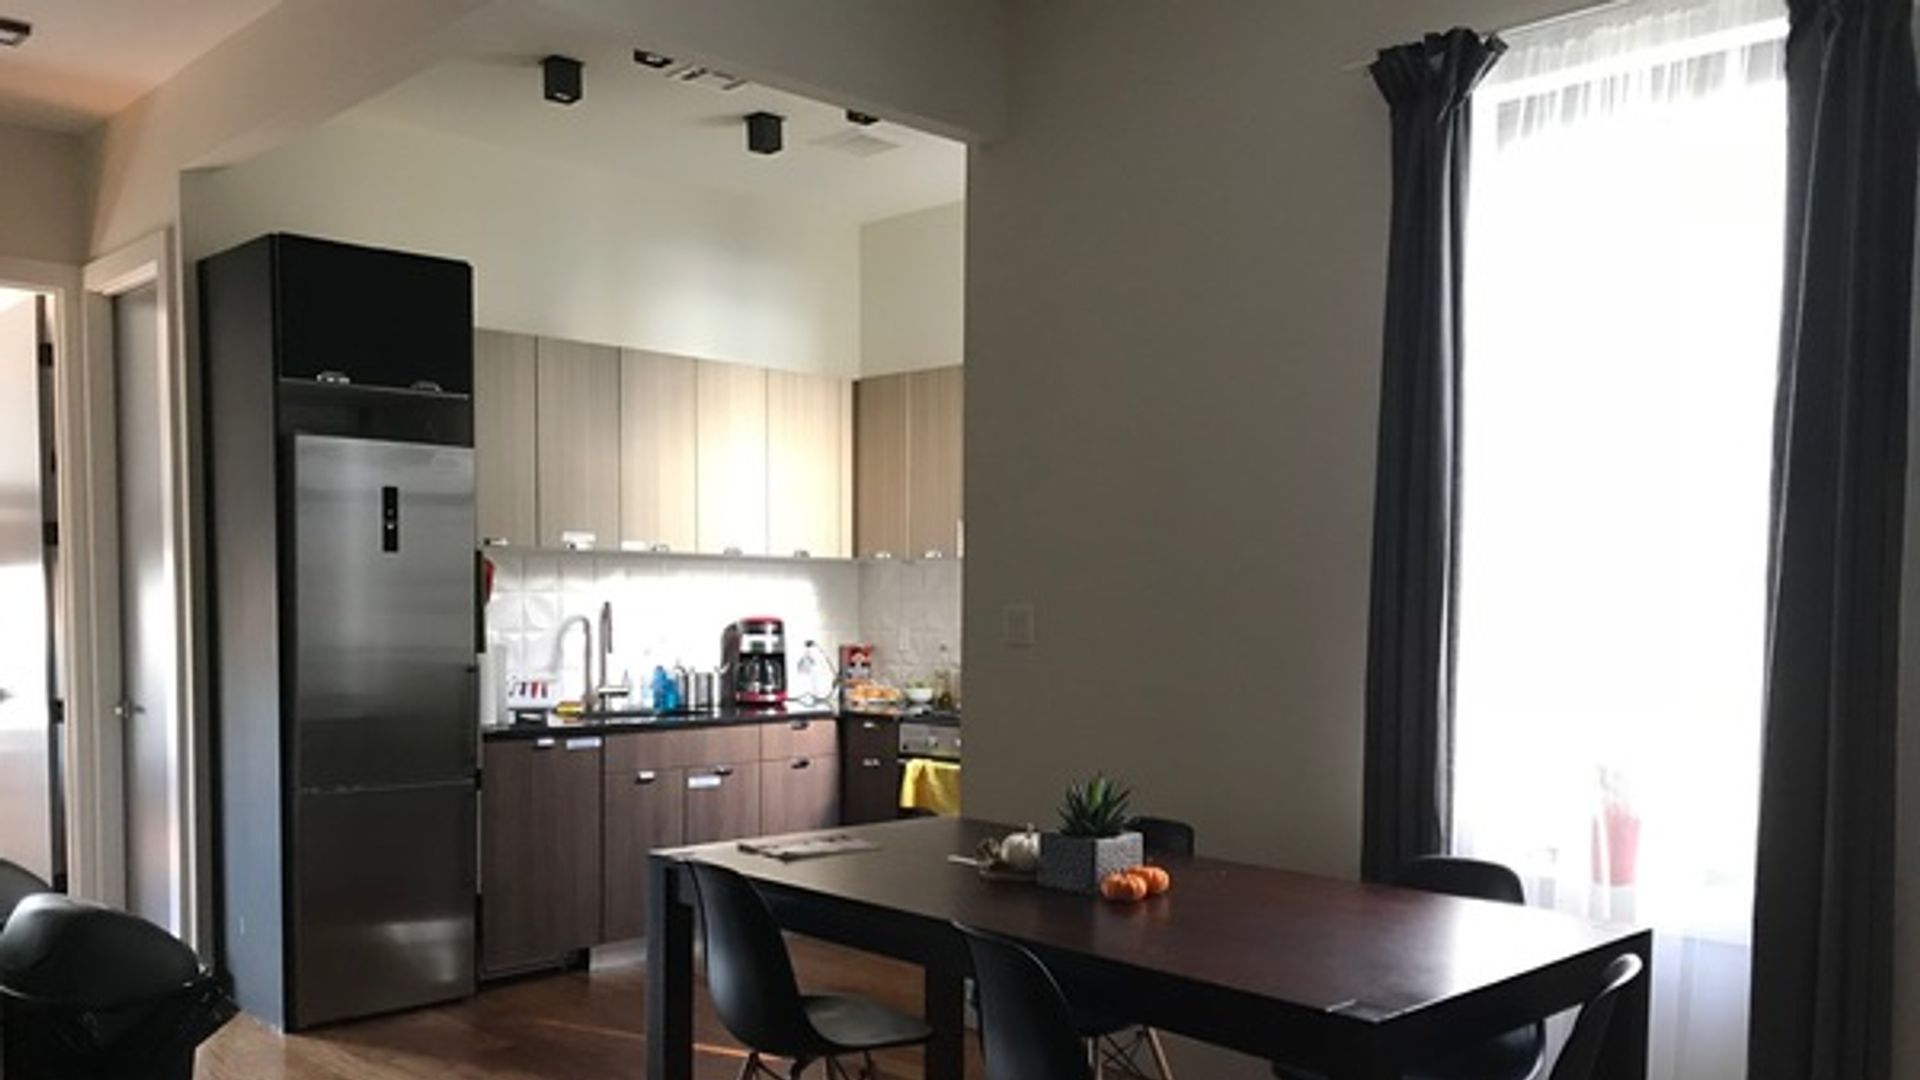 1-bed house at 250 Schaefer Street, Brooklyn, NY 11207 ...